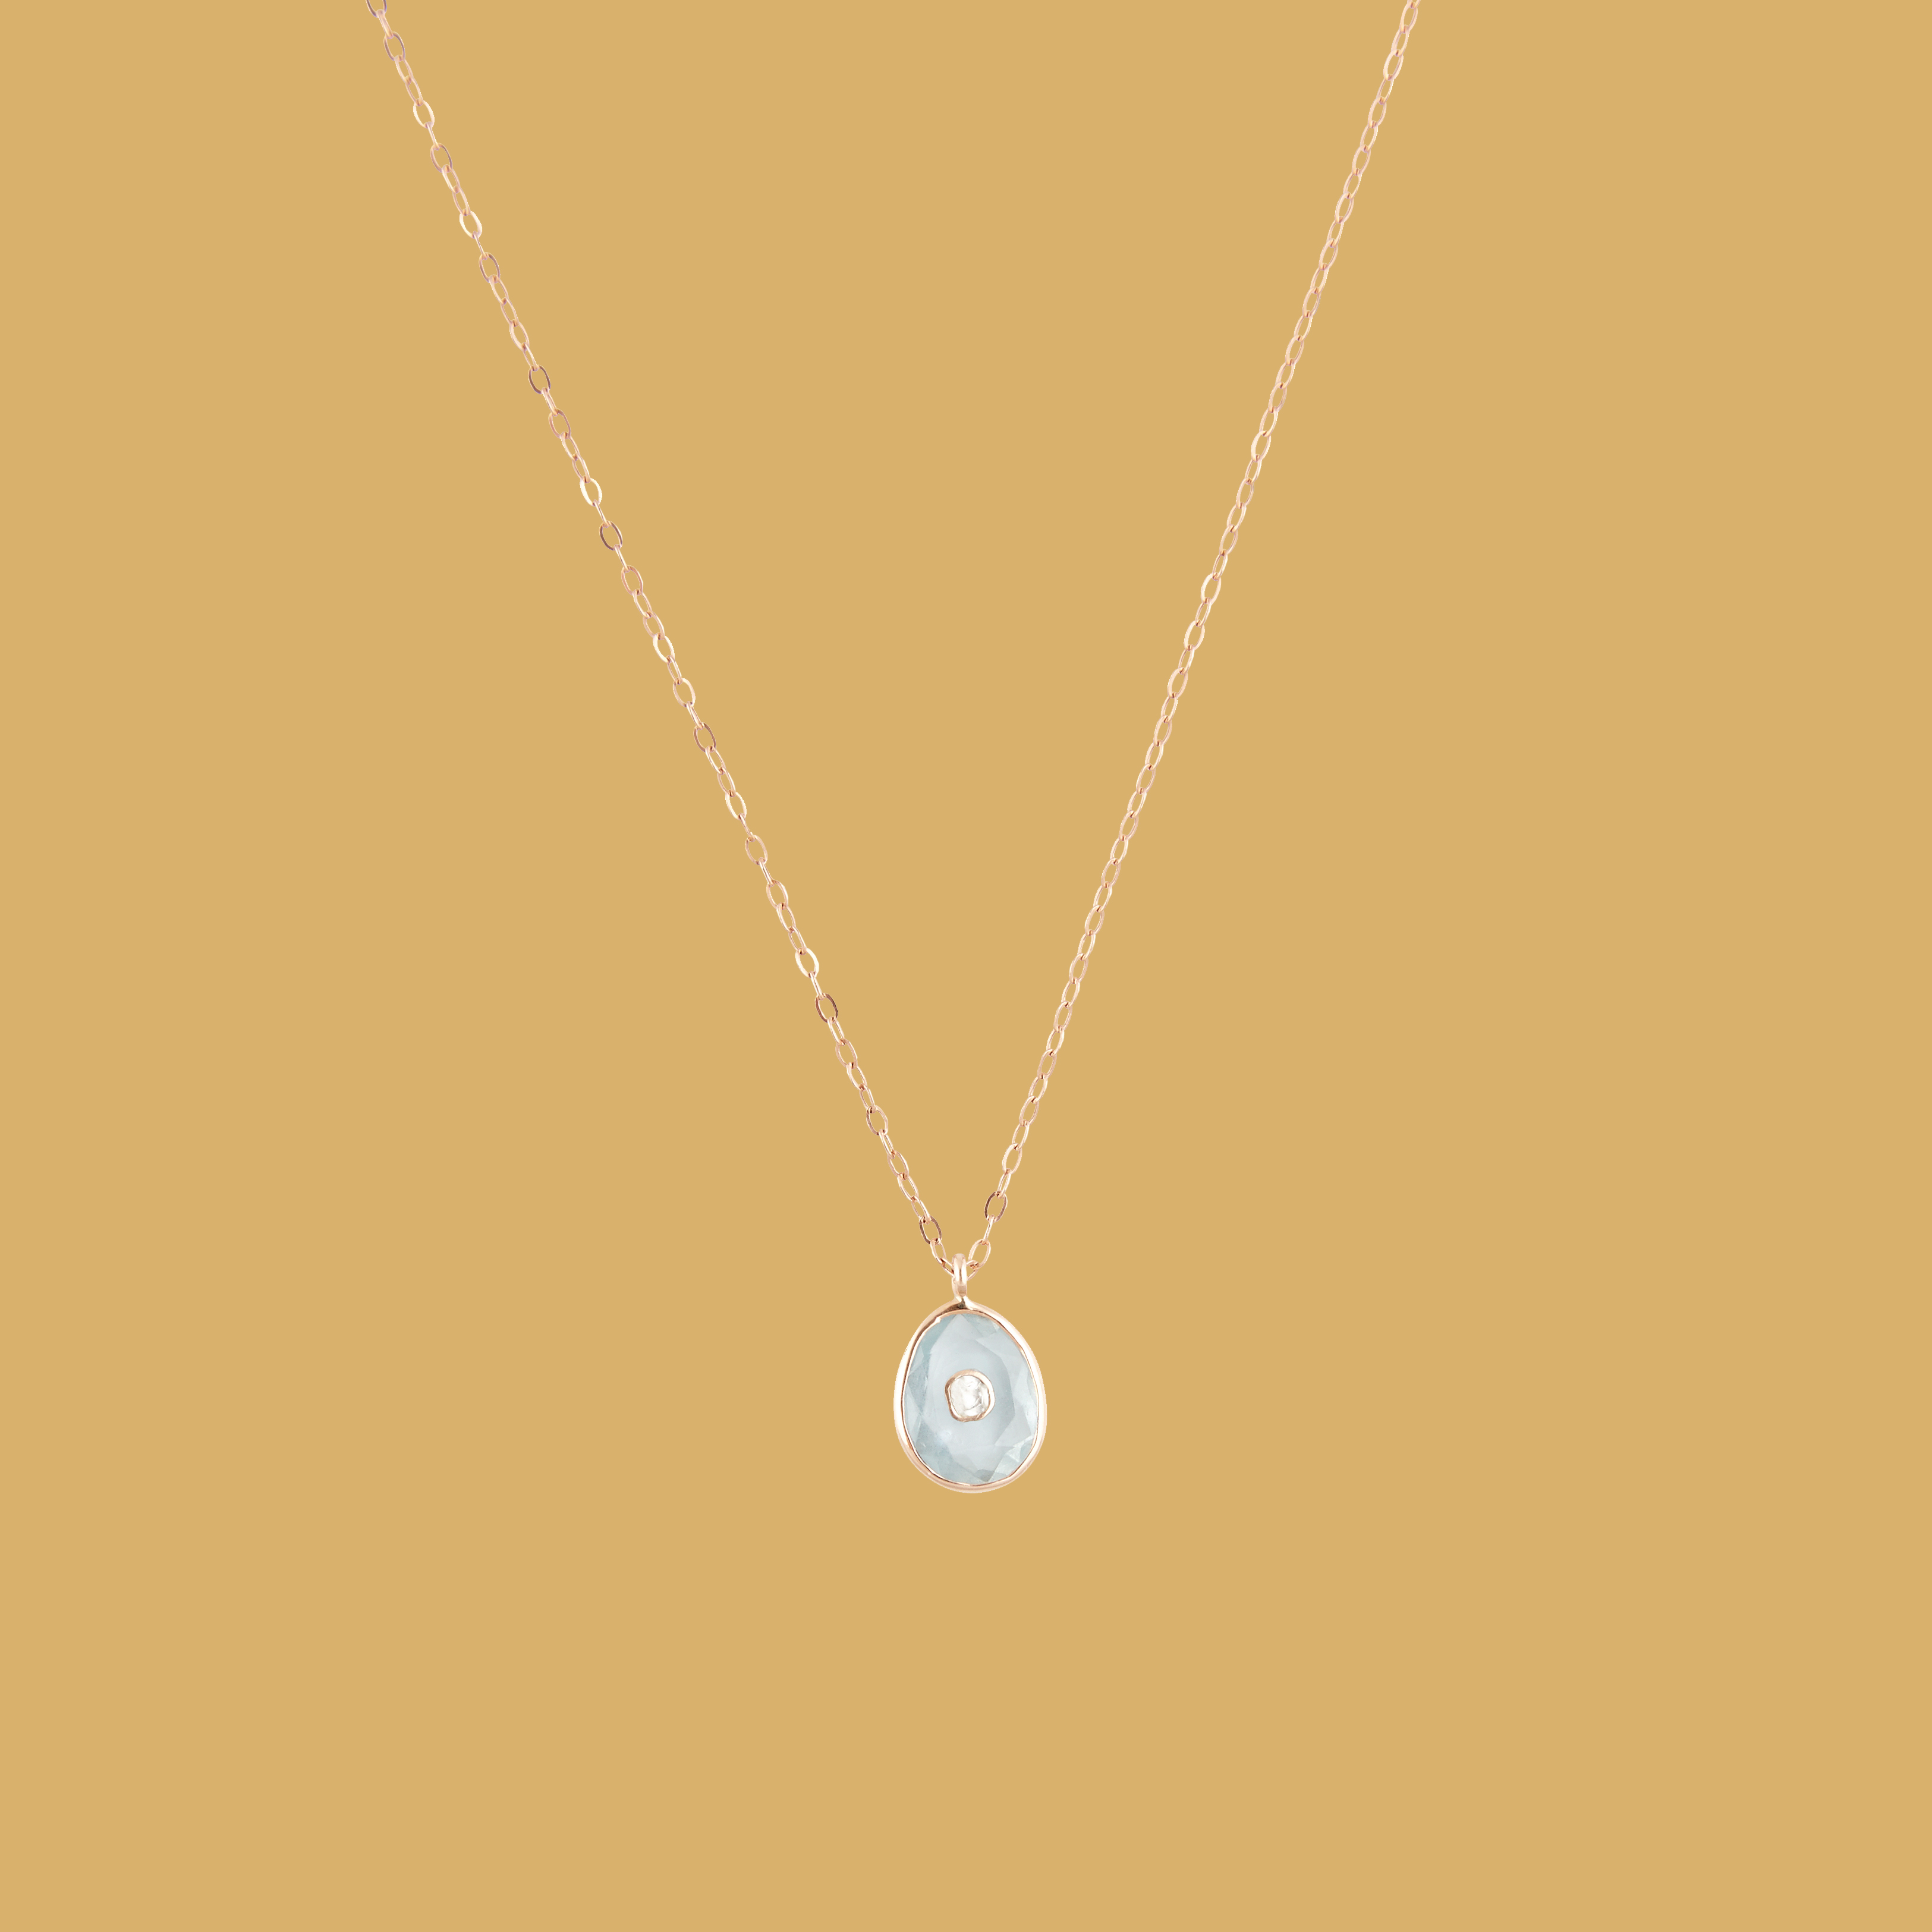 Pascale Monvoisin aquamarine diamond necklace